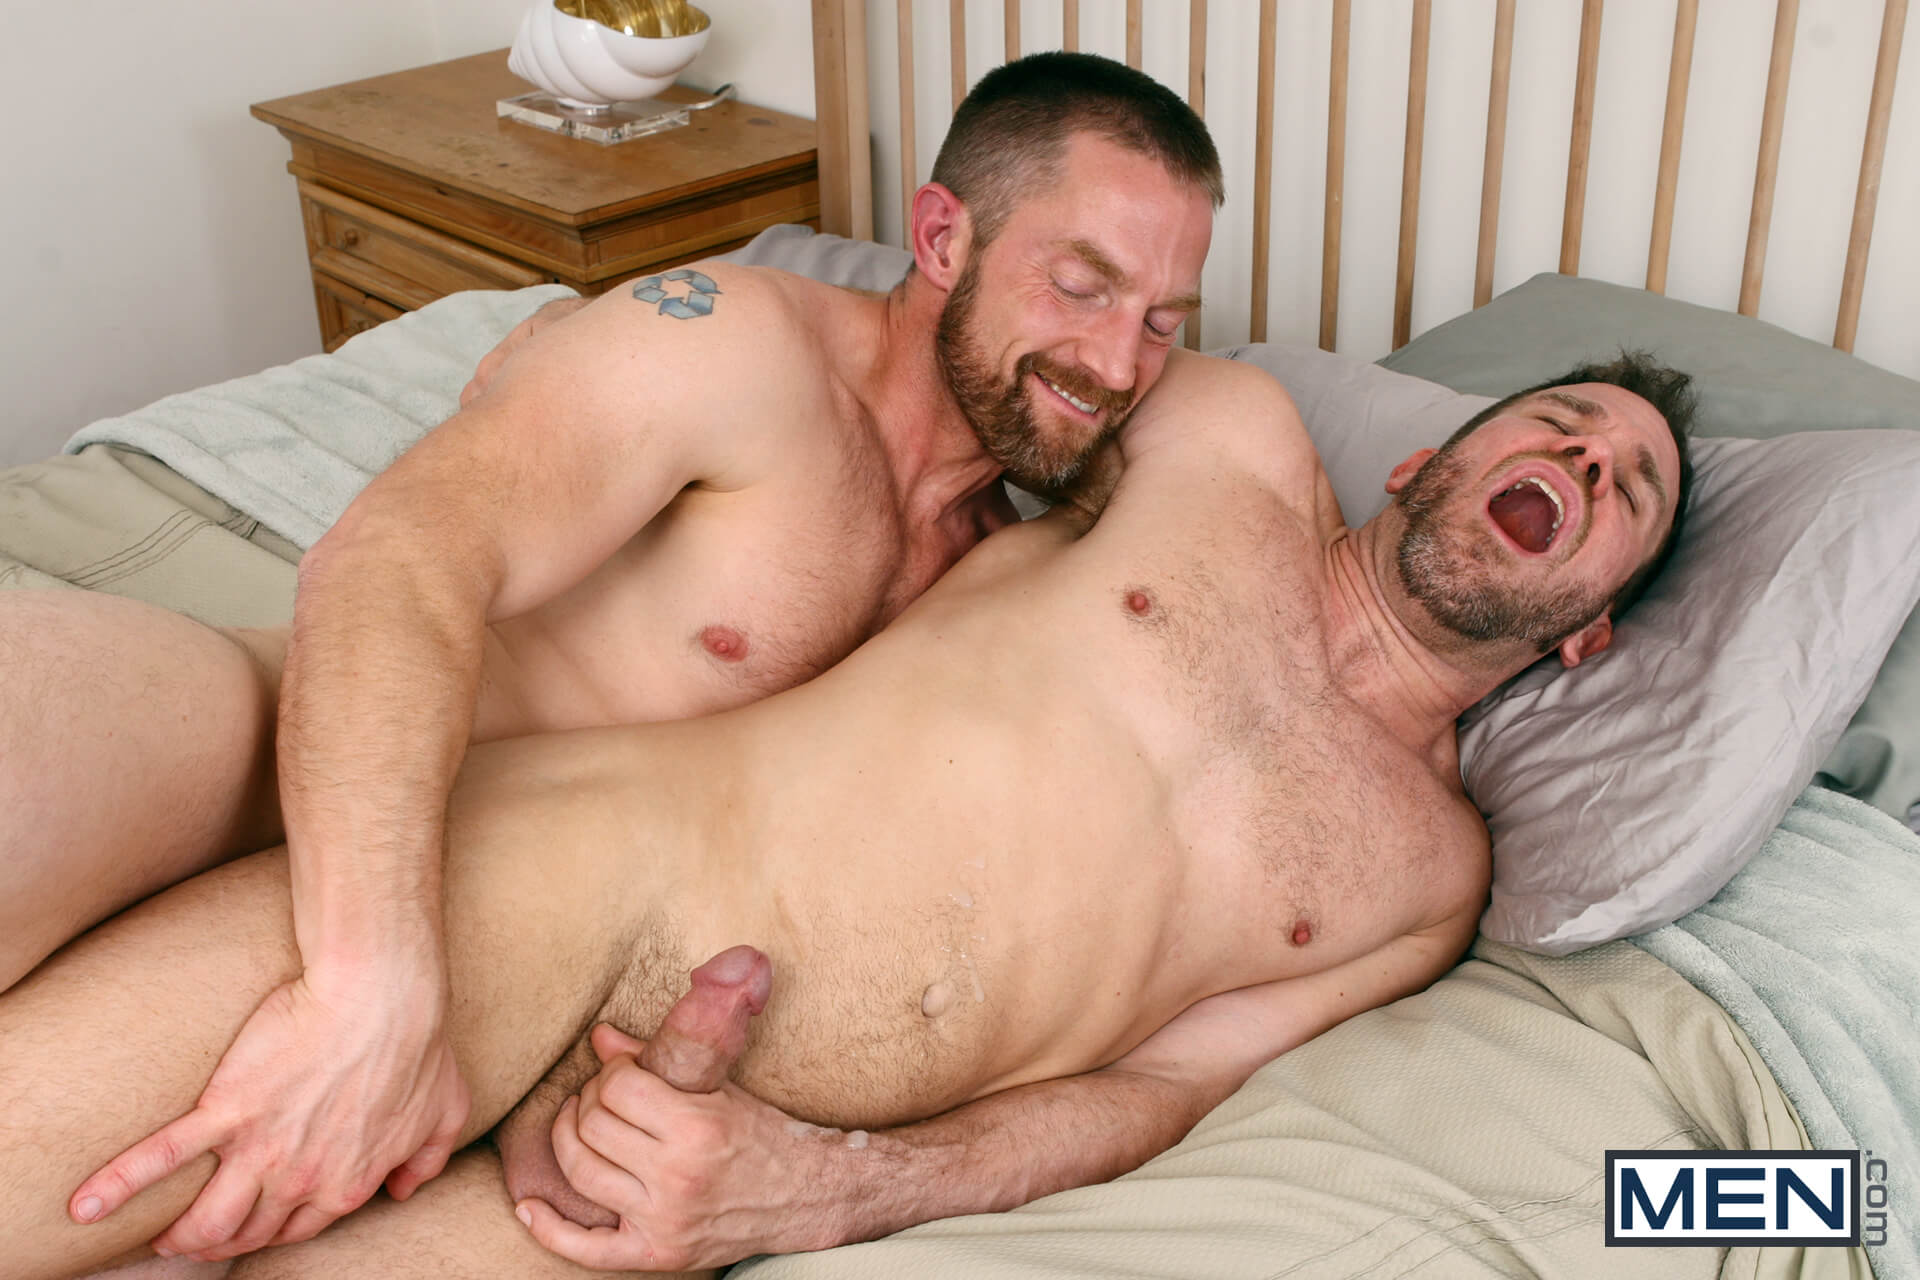 men drill my hole son swap part 4 adam herst ryan wilcox gay porn blog image 23